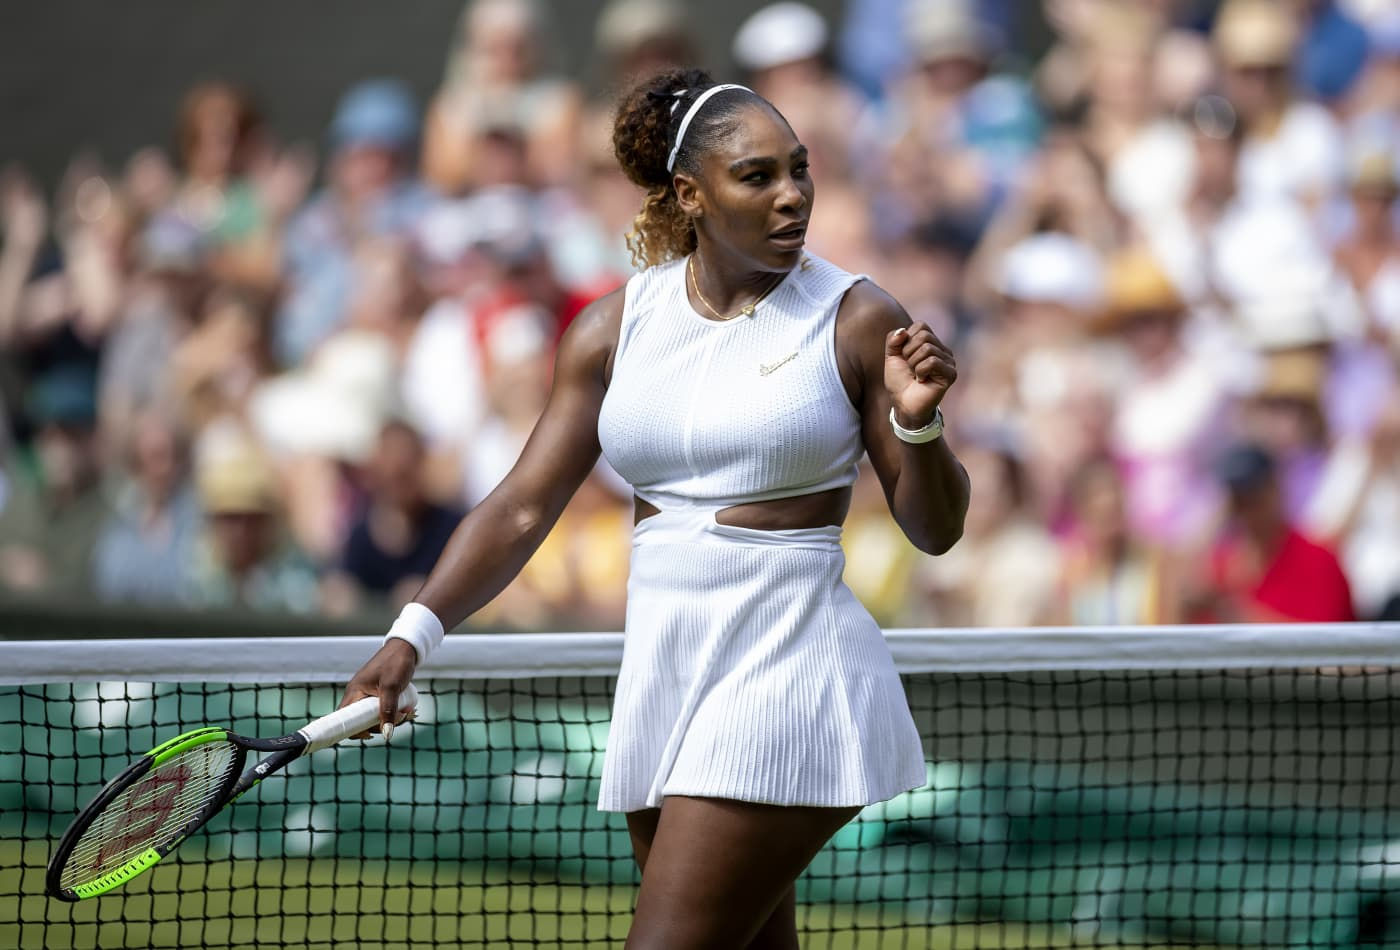 "My Age And My Last Name Caused Controversies"" - Serena Williams ..."